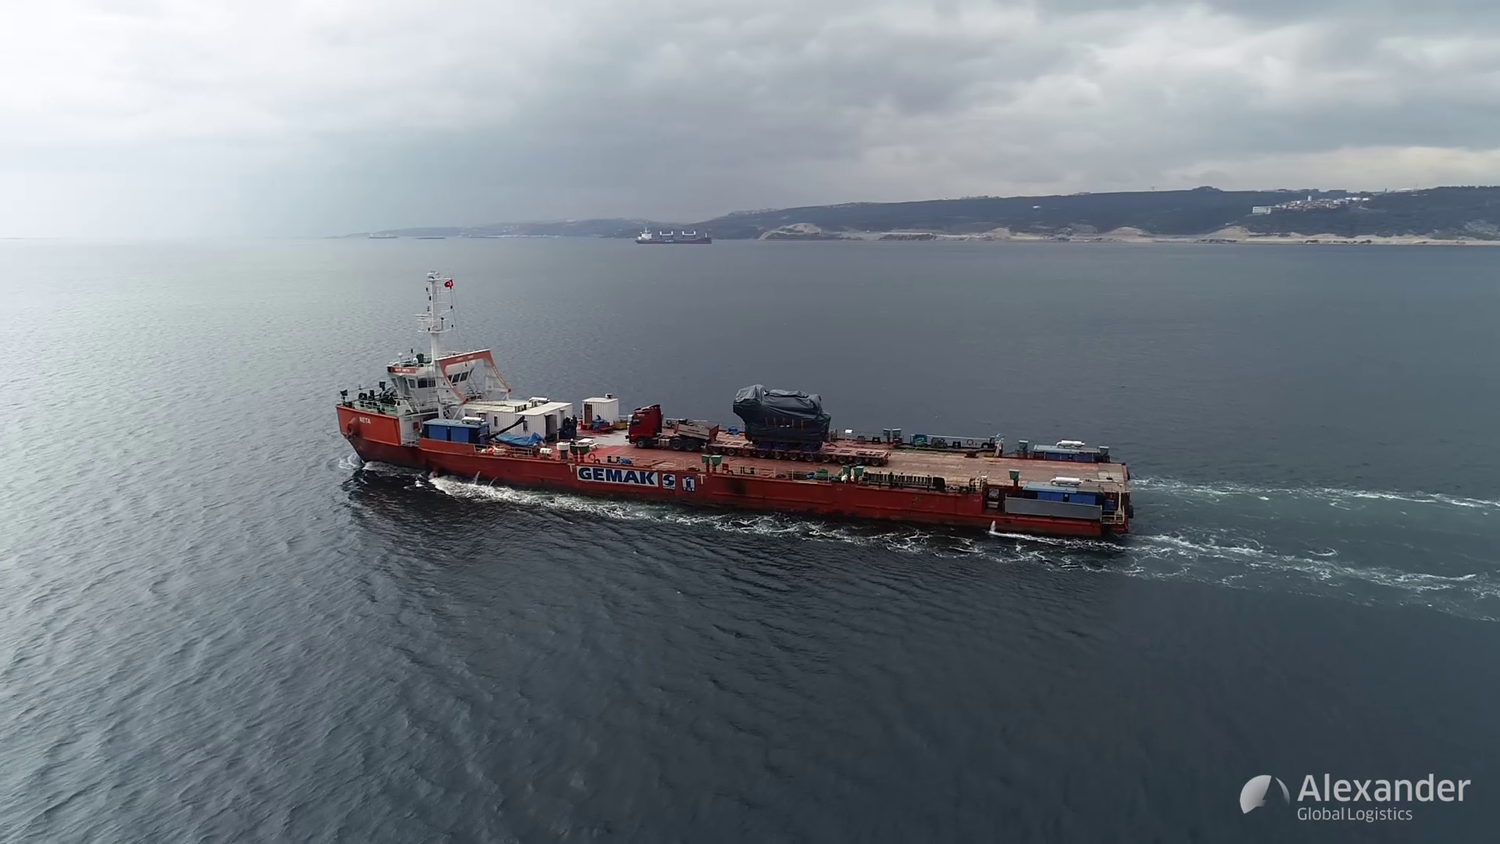 AGL Transports 128 Ton Engine to Turkey